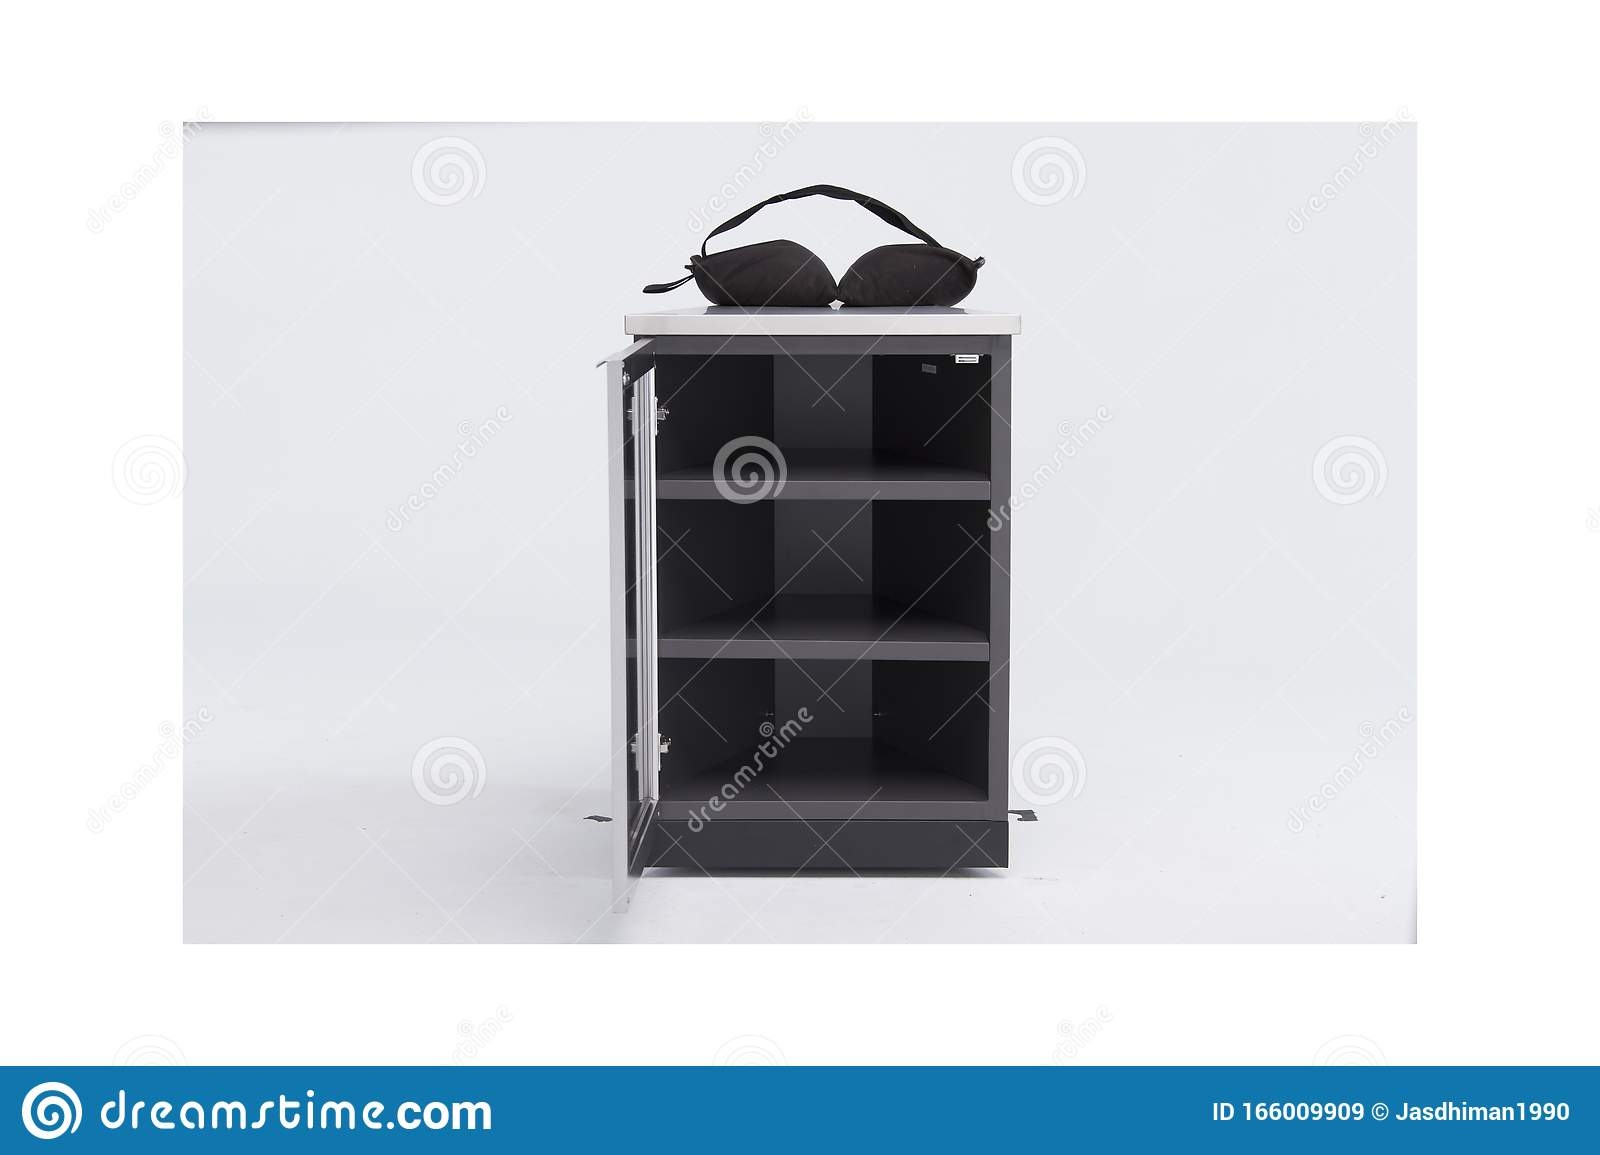 The Home Depot Canada 4 Piece Aluminum Outdoor Kitchen In Slate With Covers Outdoor Kitchen Aluminum 32 Inch Triple Drawer Stock Image Image Of Handle File 166009909